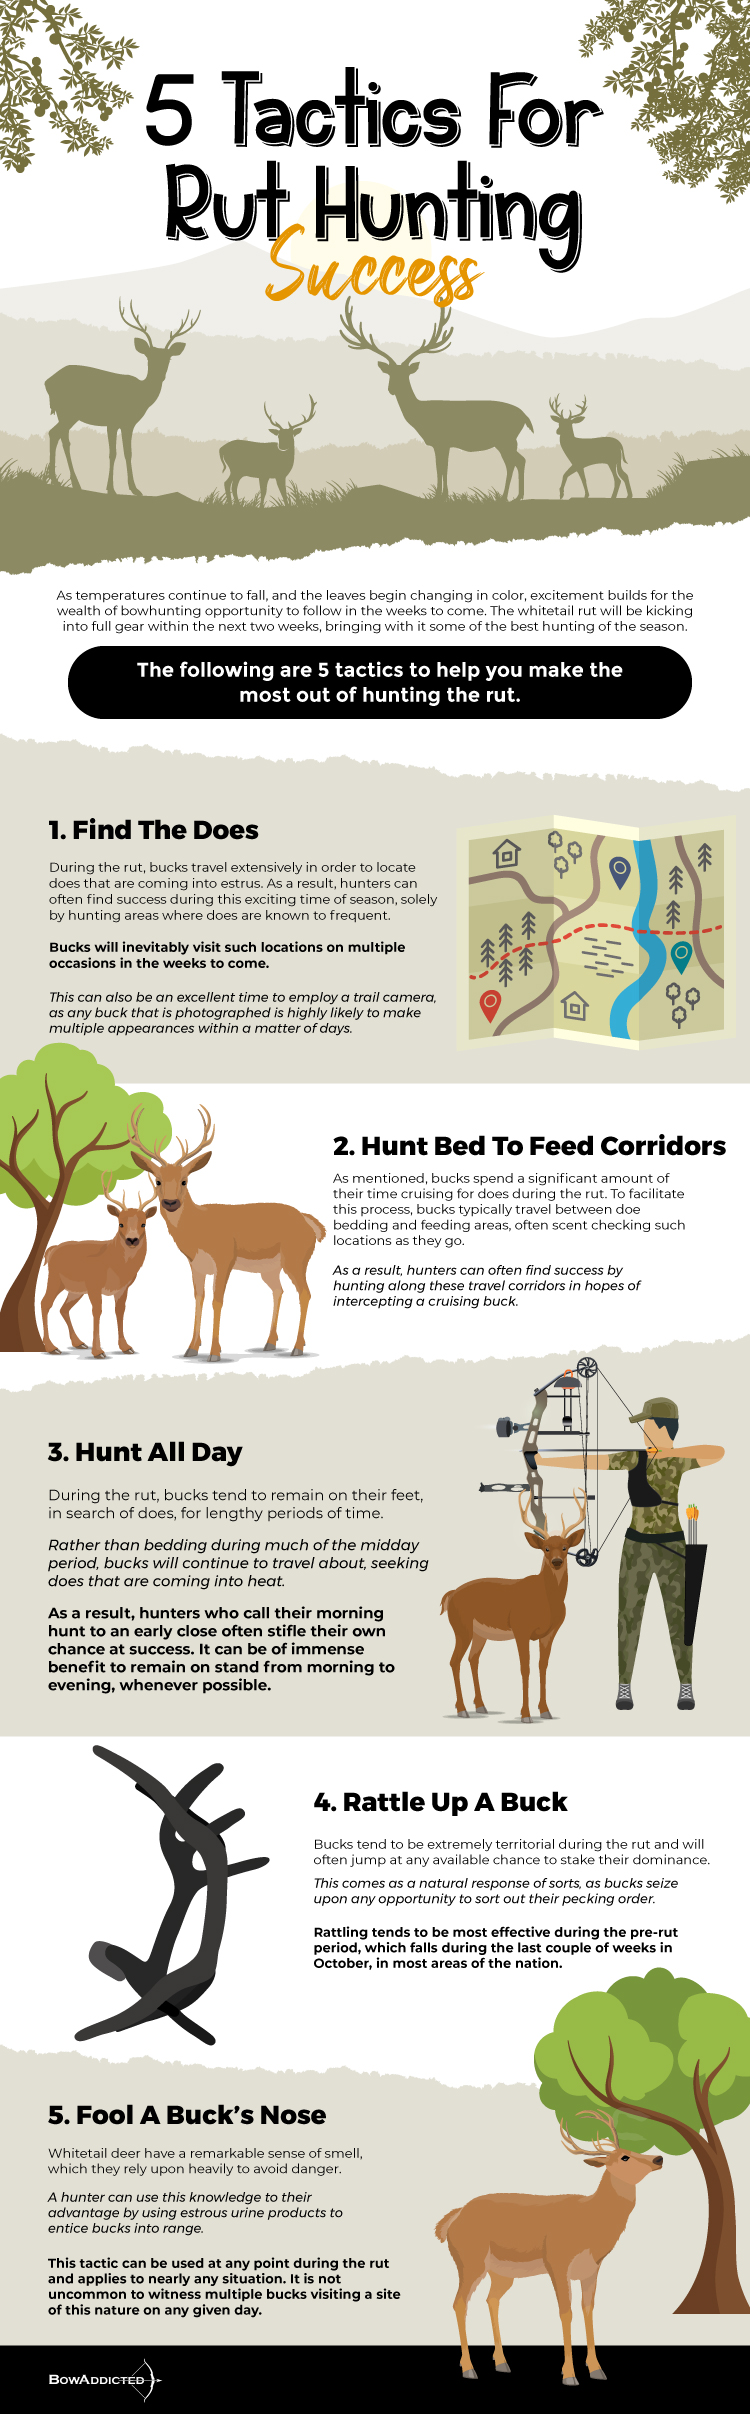 5-tactics-for-rut-hunting-success-infographic-plaza